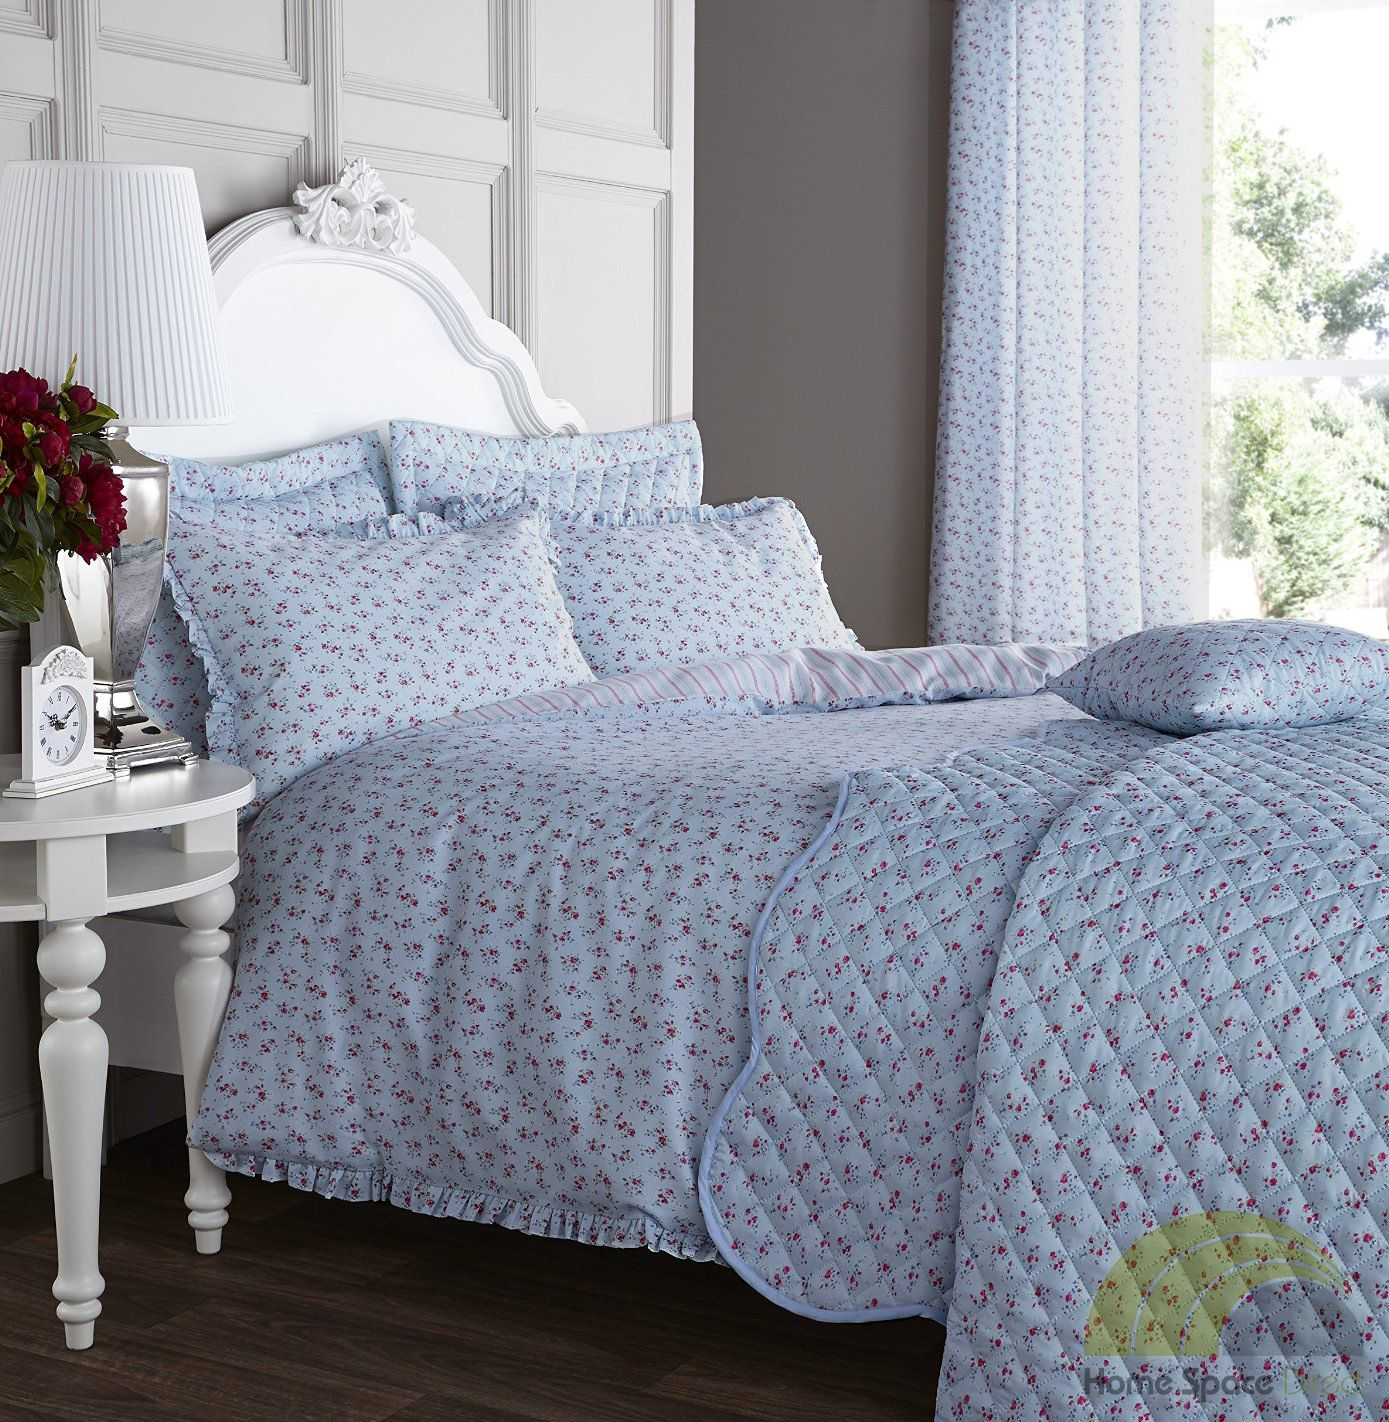 Floral Duvet Cover Bedding Bed Sets 3 Sizes Or Eyelet Curtains Or Accessories